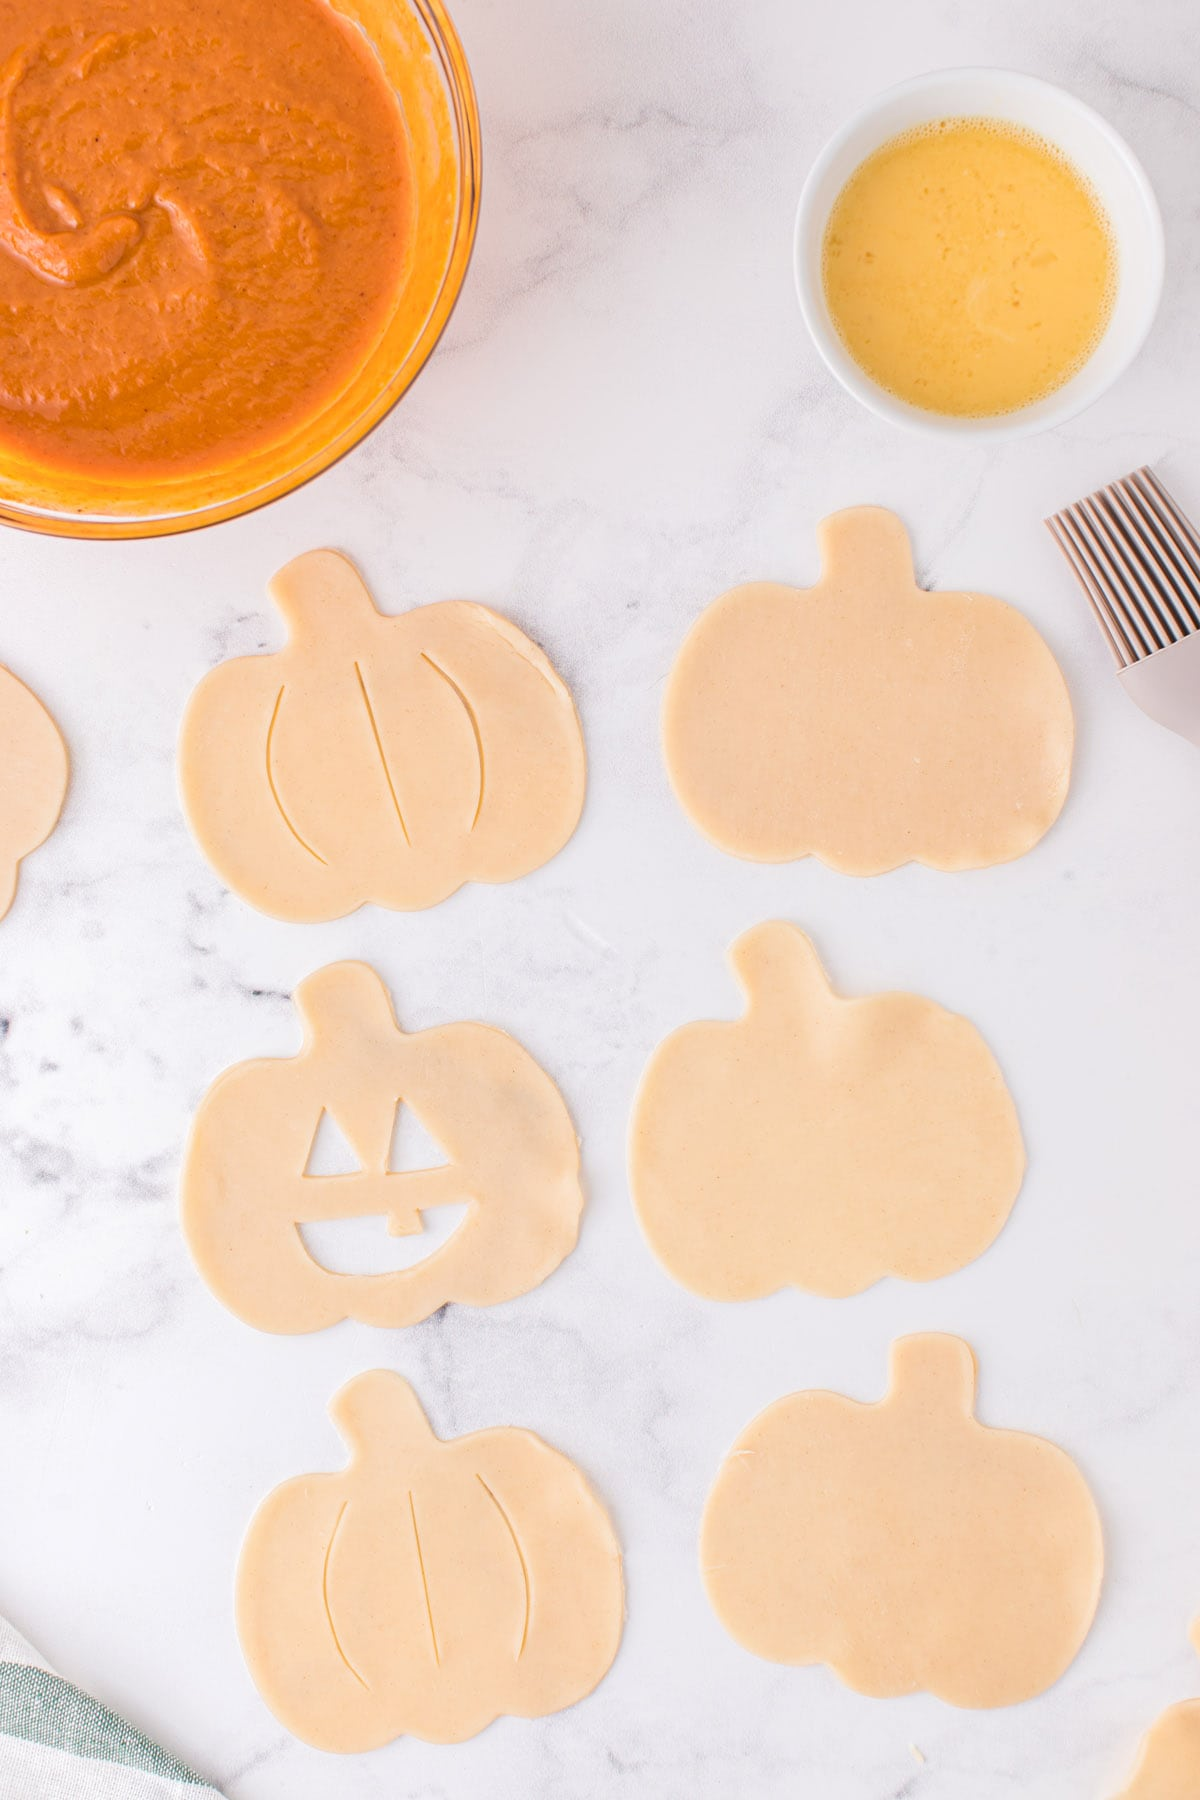 cut out faces to create Jack-O-Lanterns or draw three lines resemble the lines of a pumpkin